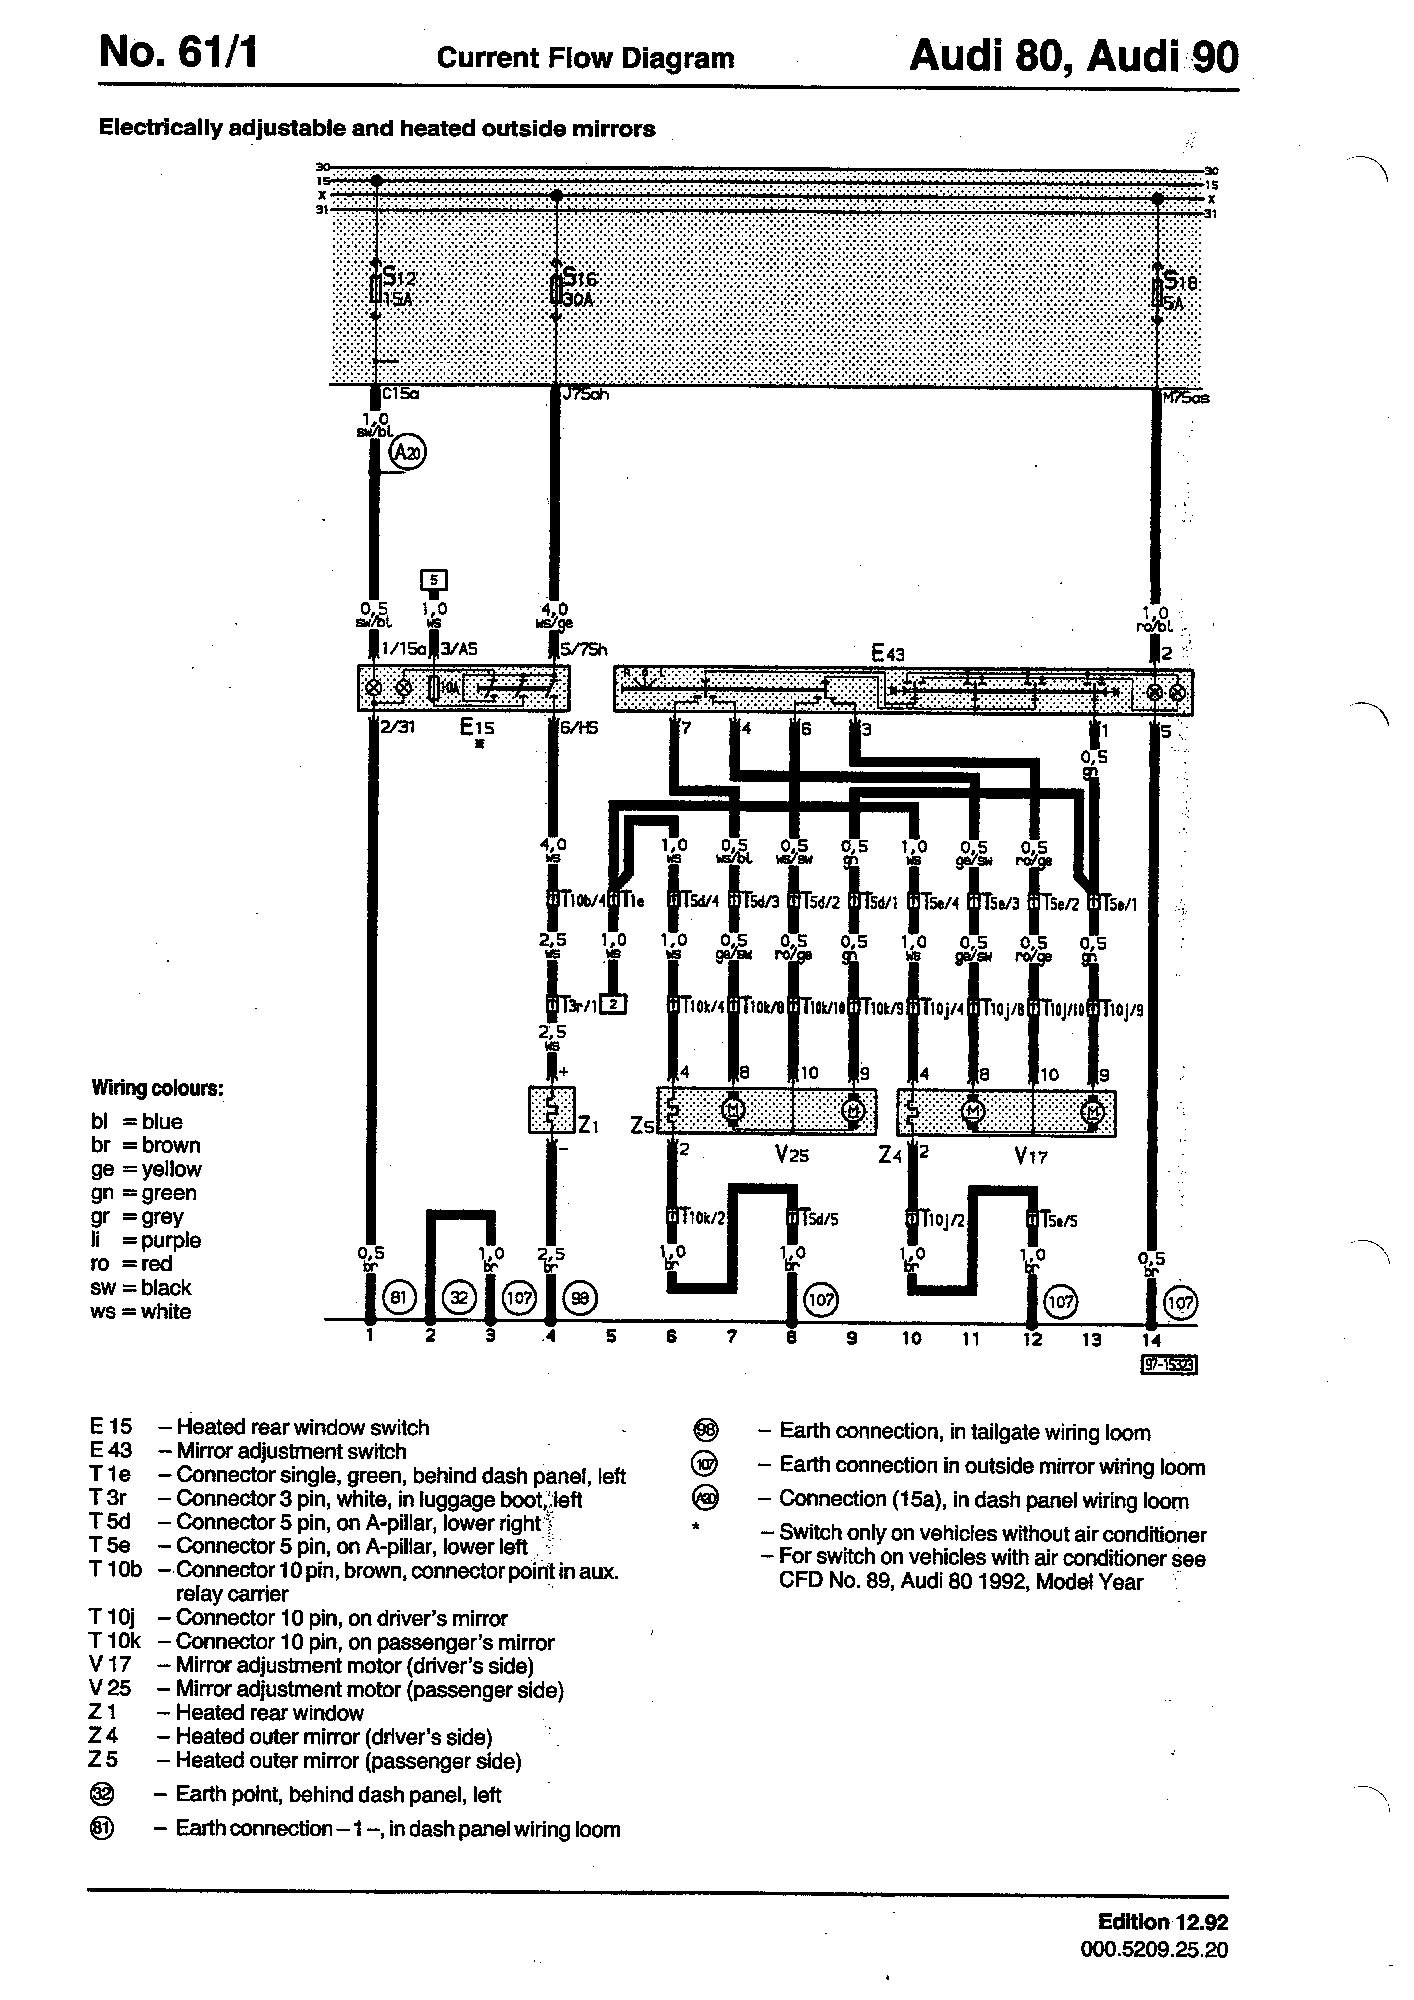 98 A4 Fuse Diagram Golden Schematic Audi 80 Box Location Wiring Diagrams Component Lookup Rh S2 Co Uk 1998 Electrical